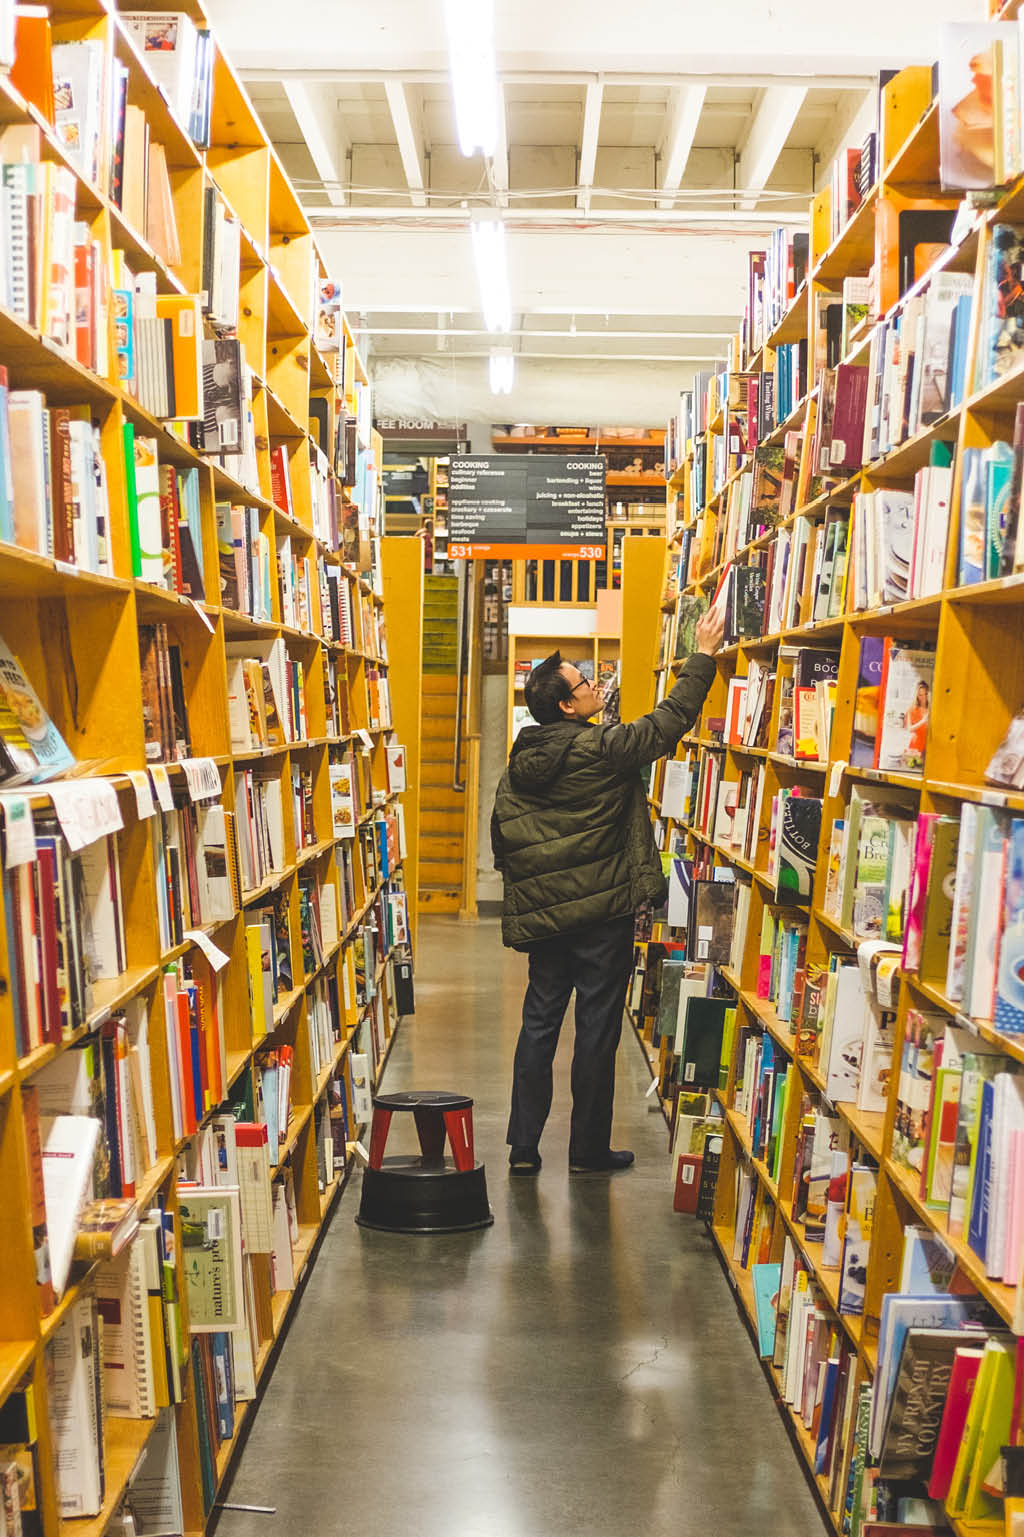 man browsing an aisle of books